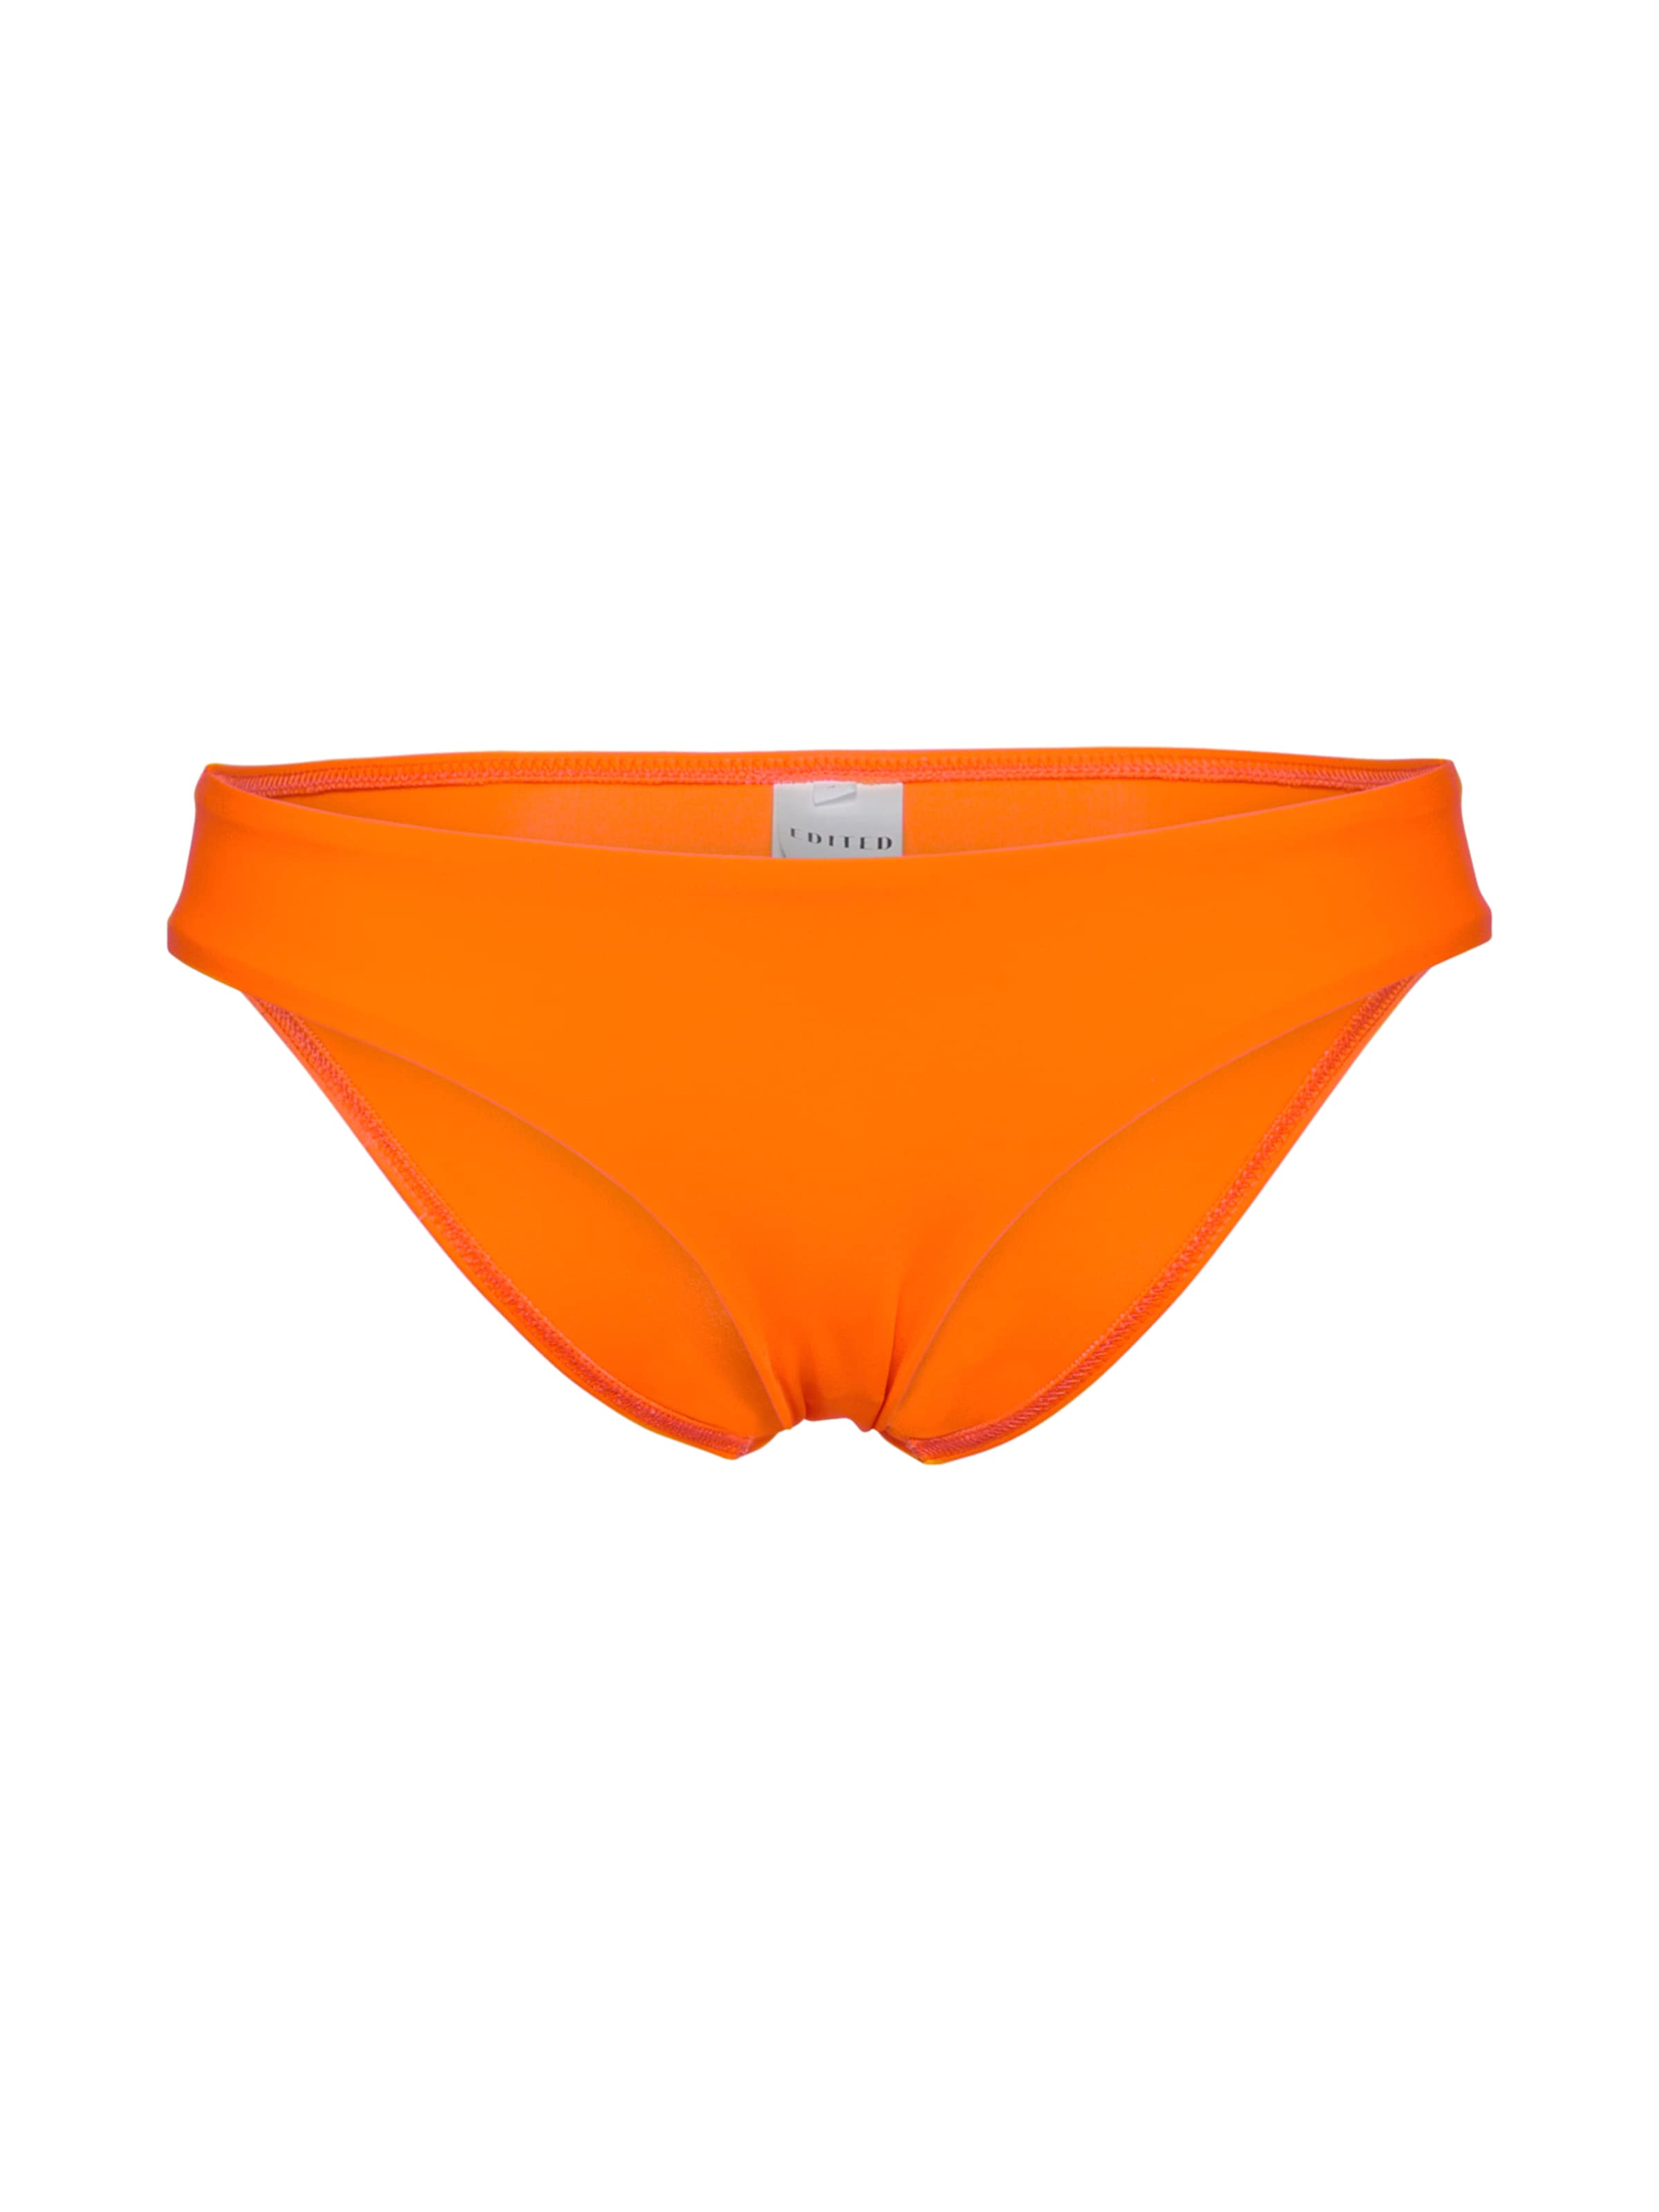 Bikini De Orange Edited En Bas 'hira' Nwn0m8